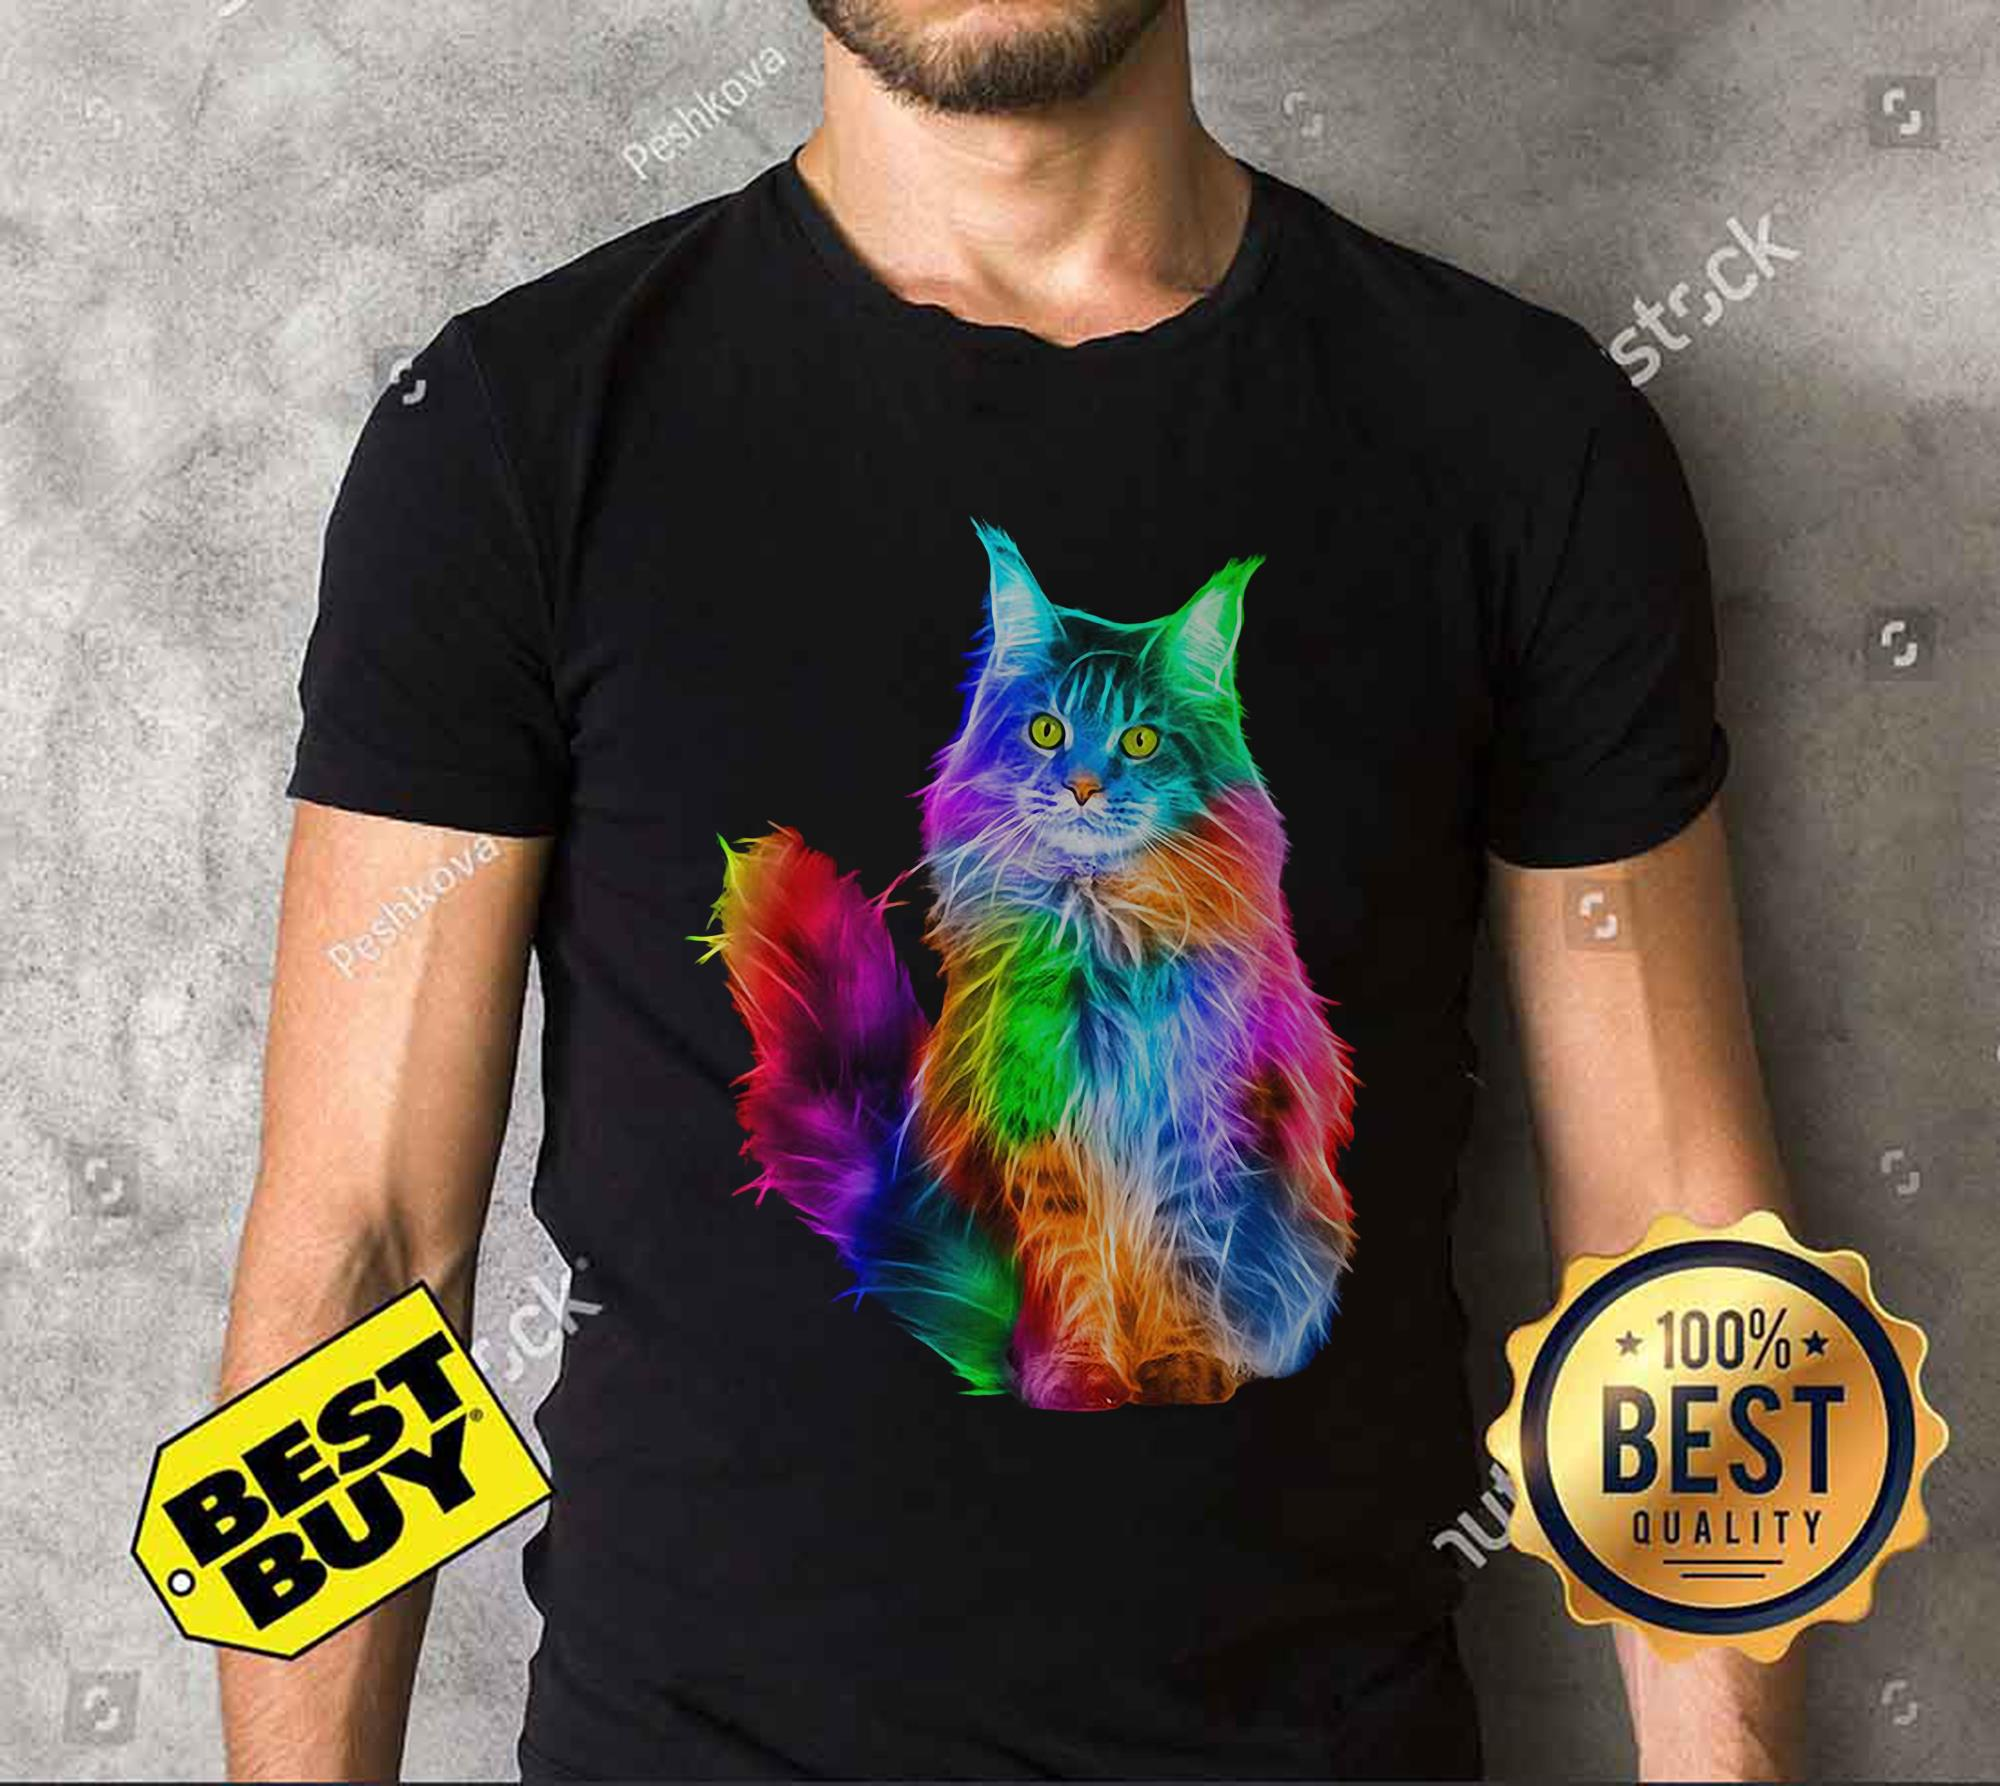 Gay Pride Rainbow Cat LGBT v-neck